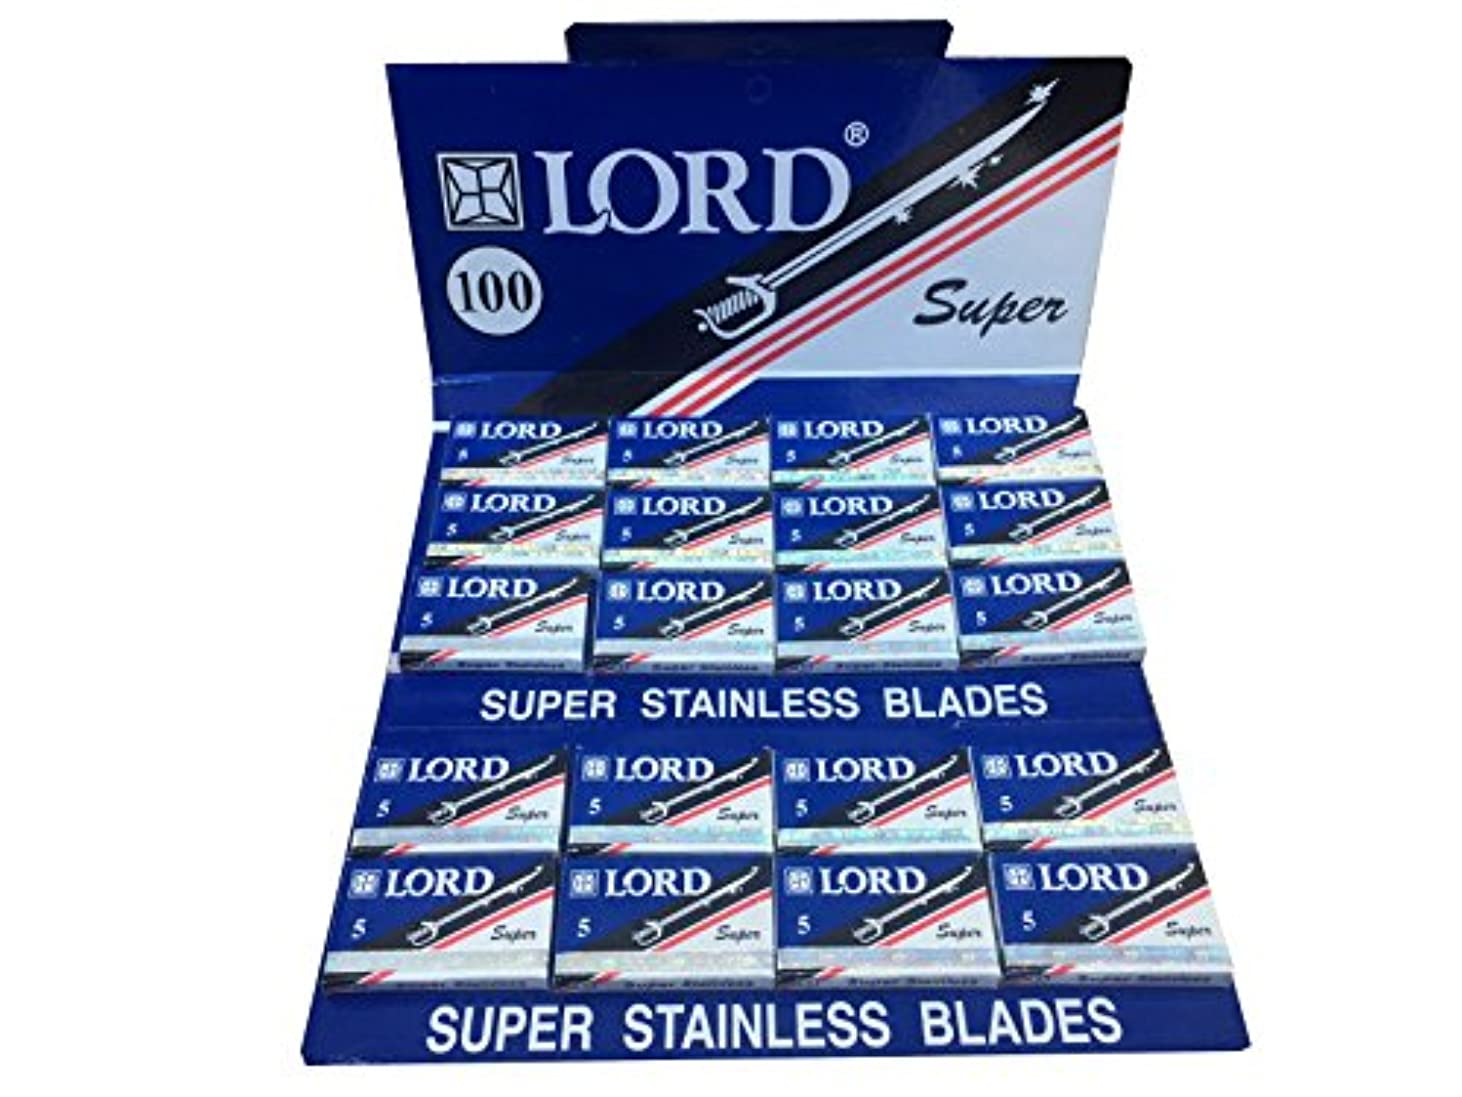 Lord Super Stainless 両刃替刃 100枚入り(5枚入り20 個セット)【並行輸入品】